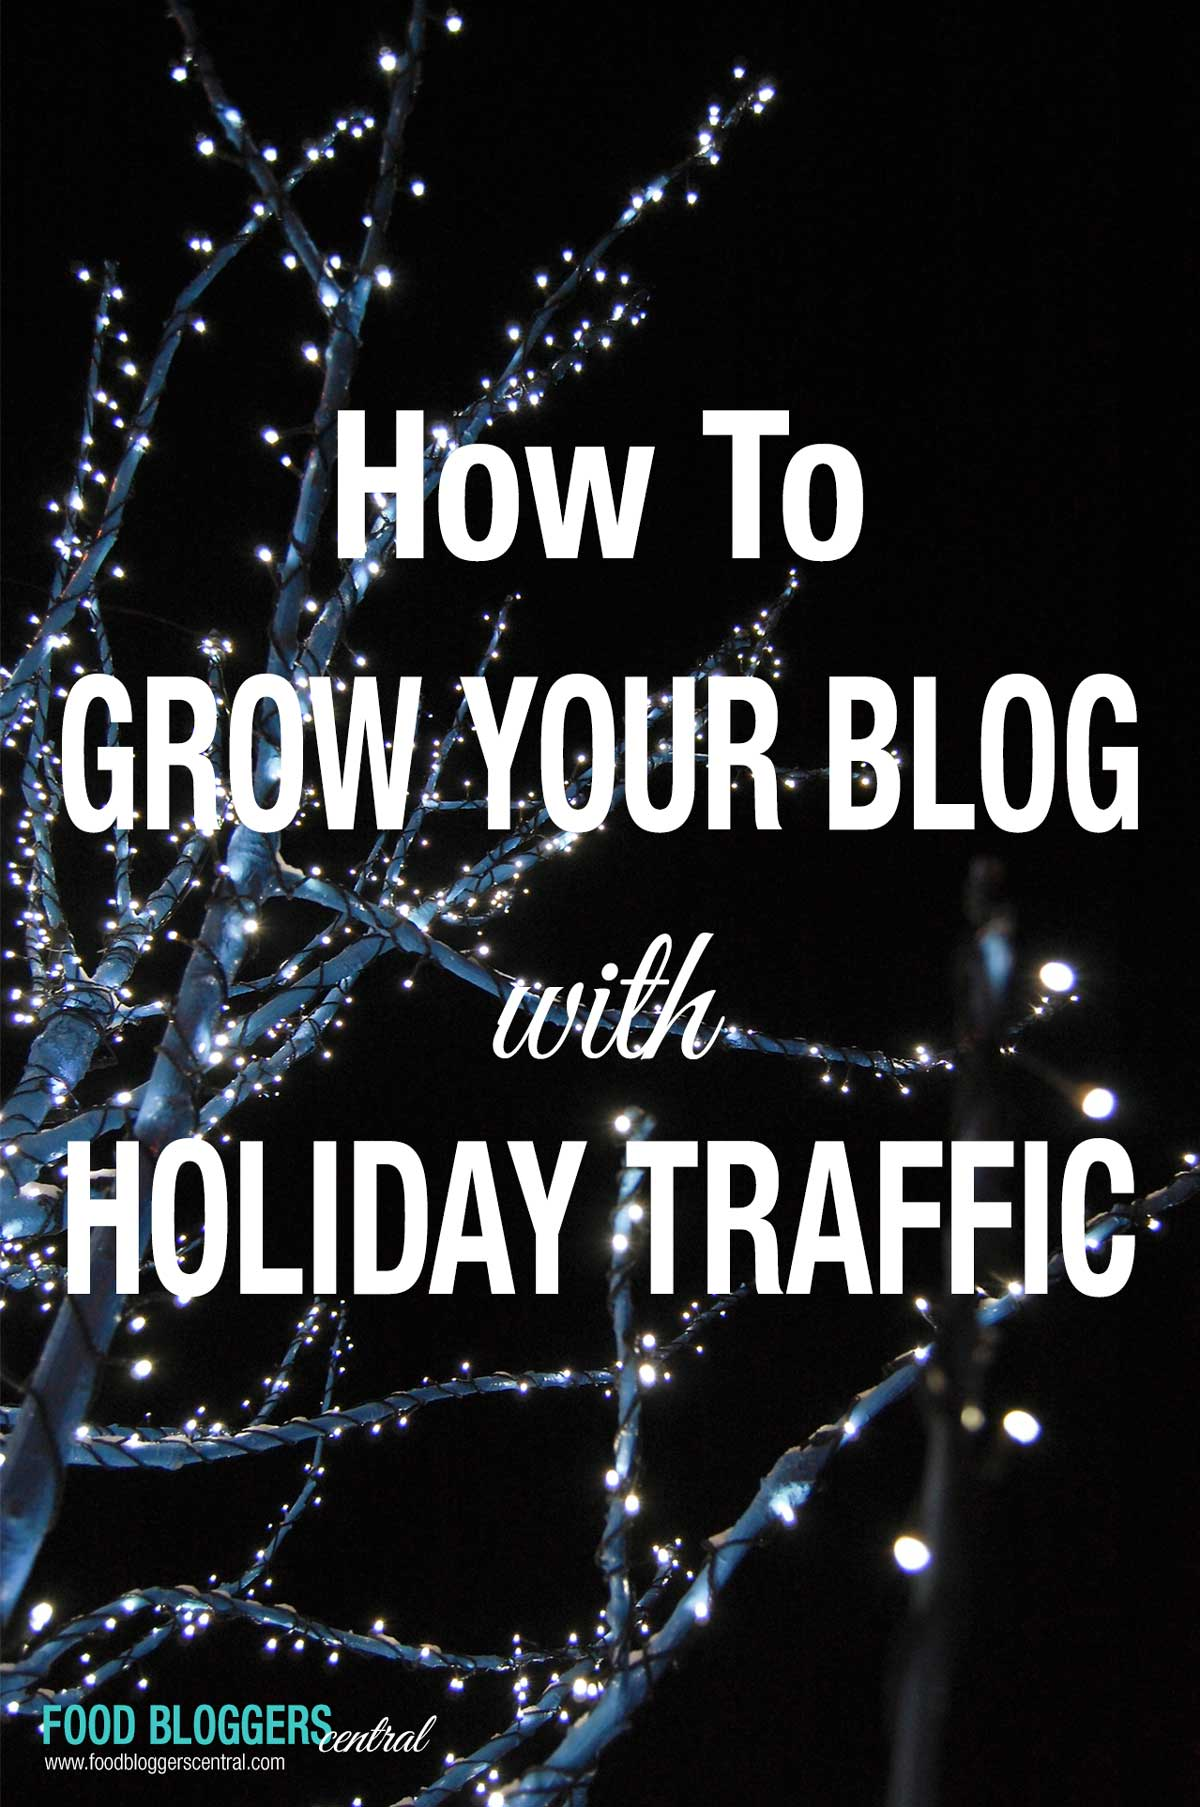 How-To-Grow-Blog-Holiday-Traffic